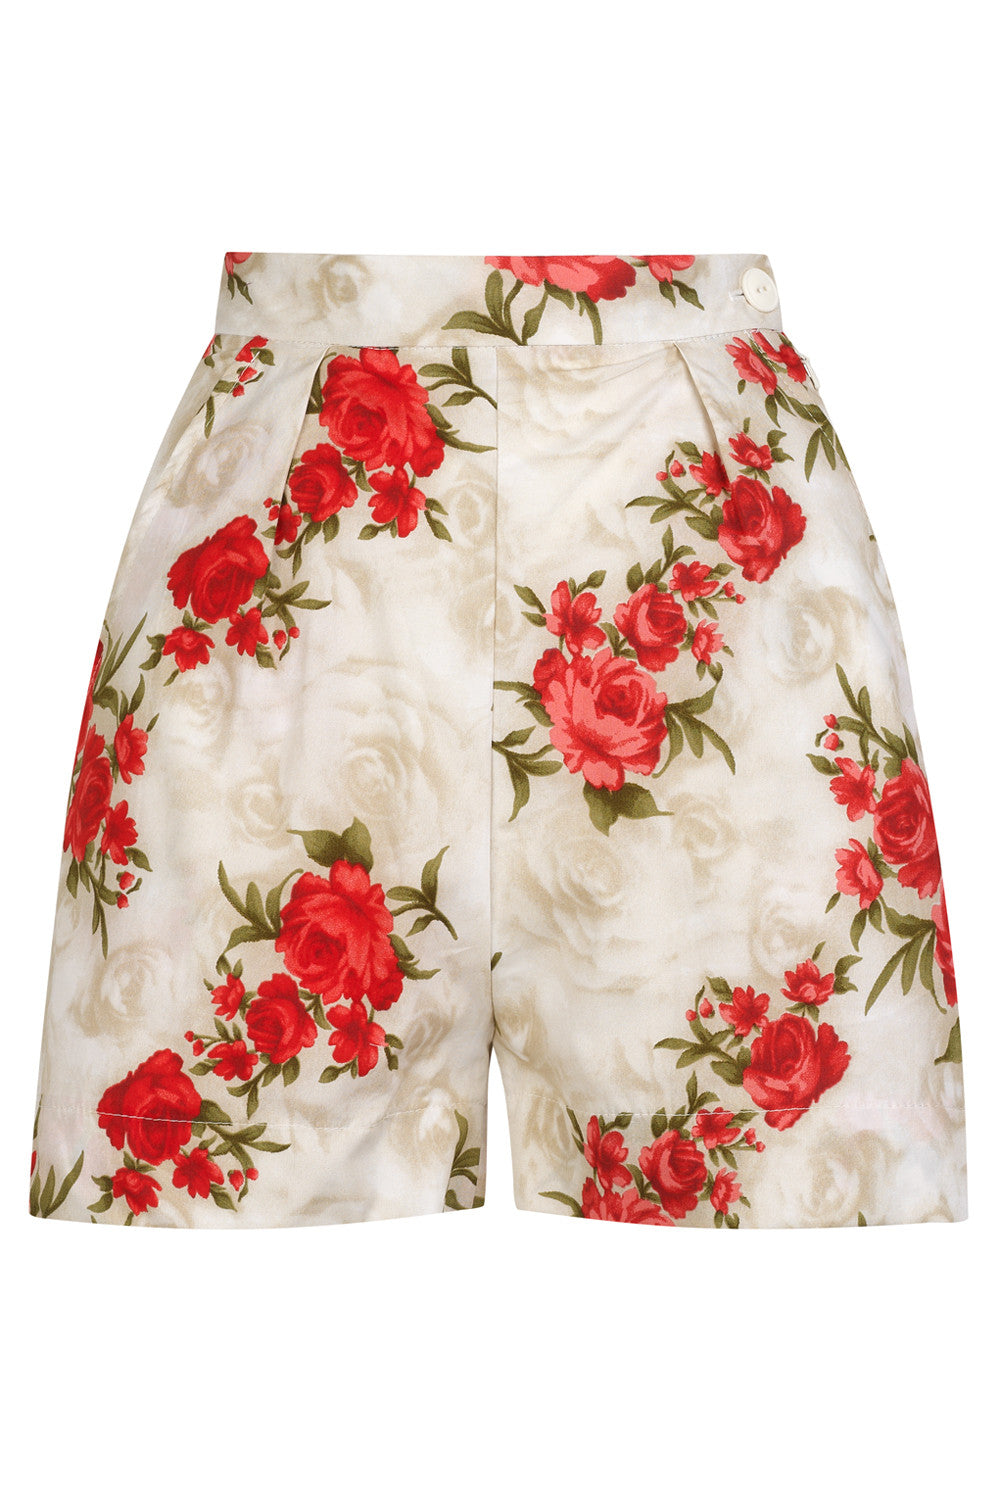 The Printed Shorts - Red Roses